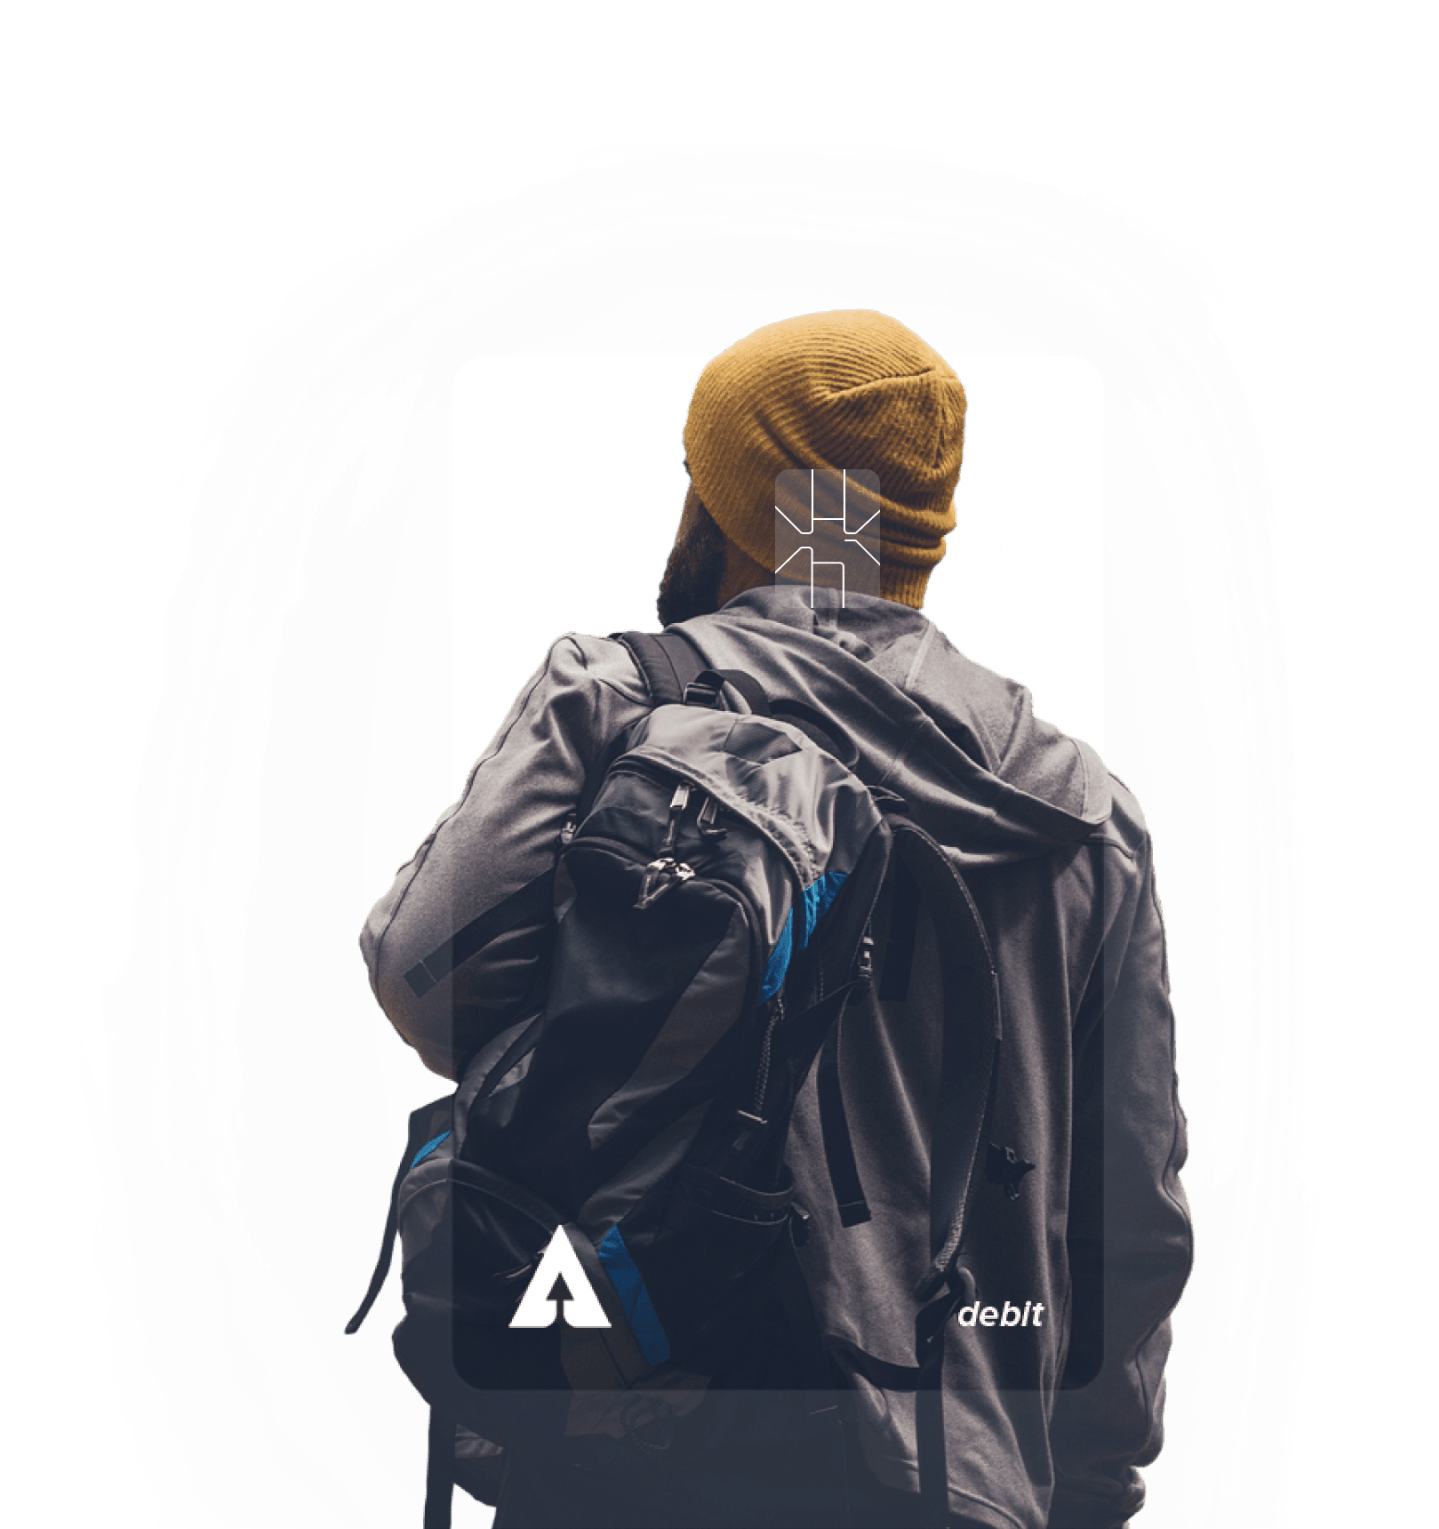 Man with a backpack.